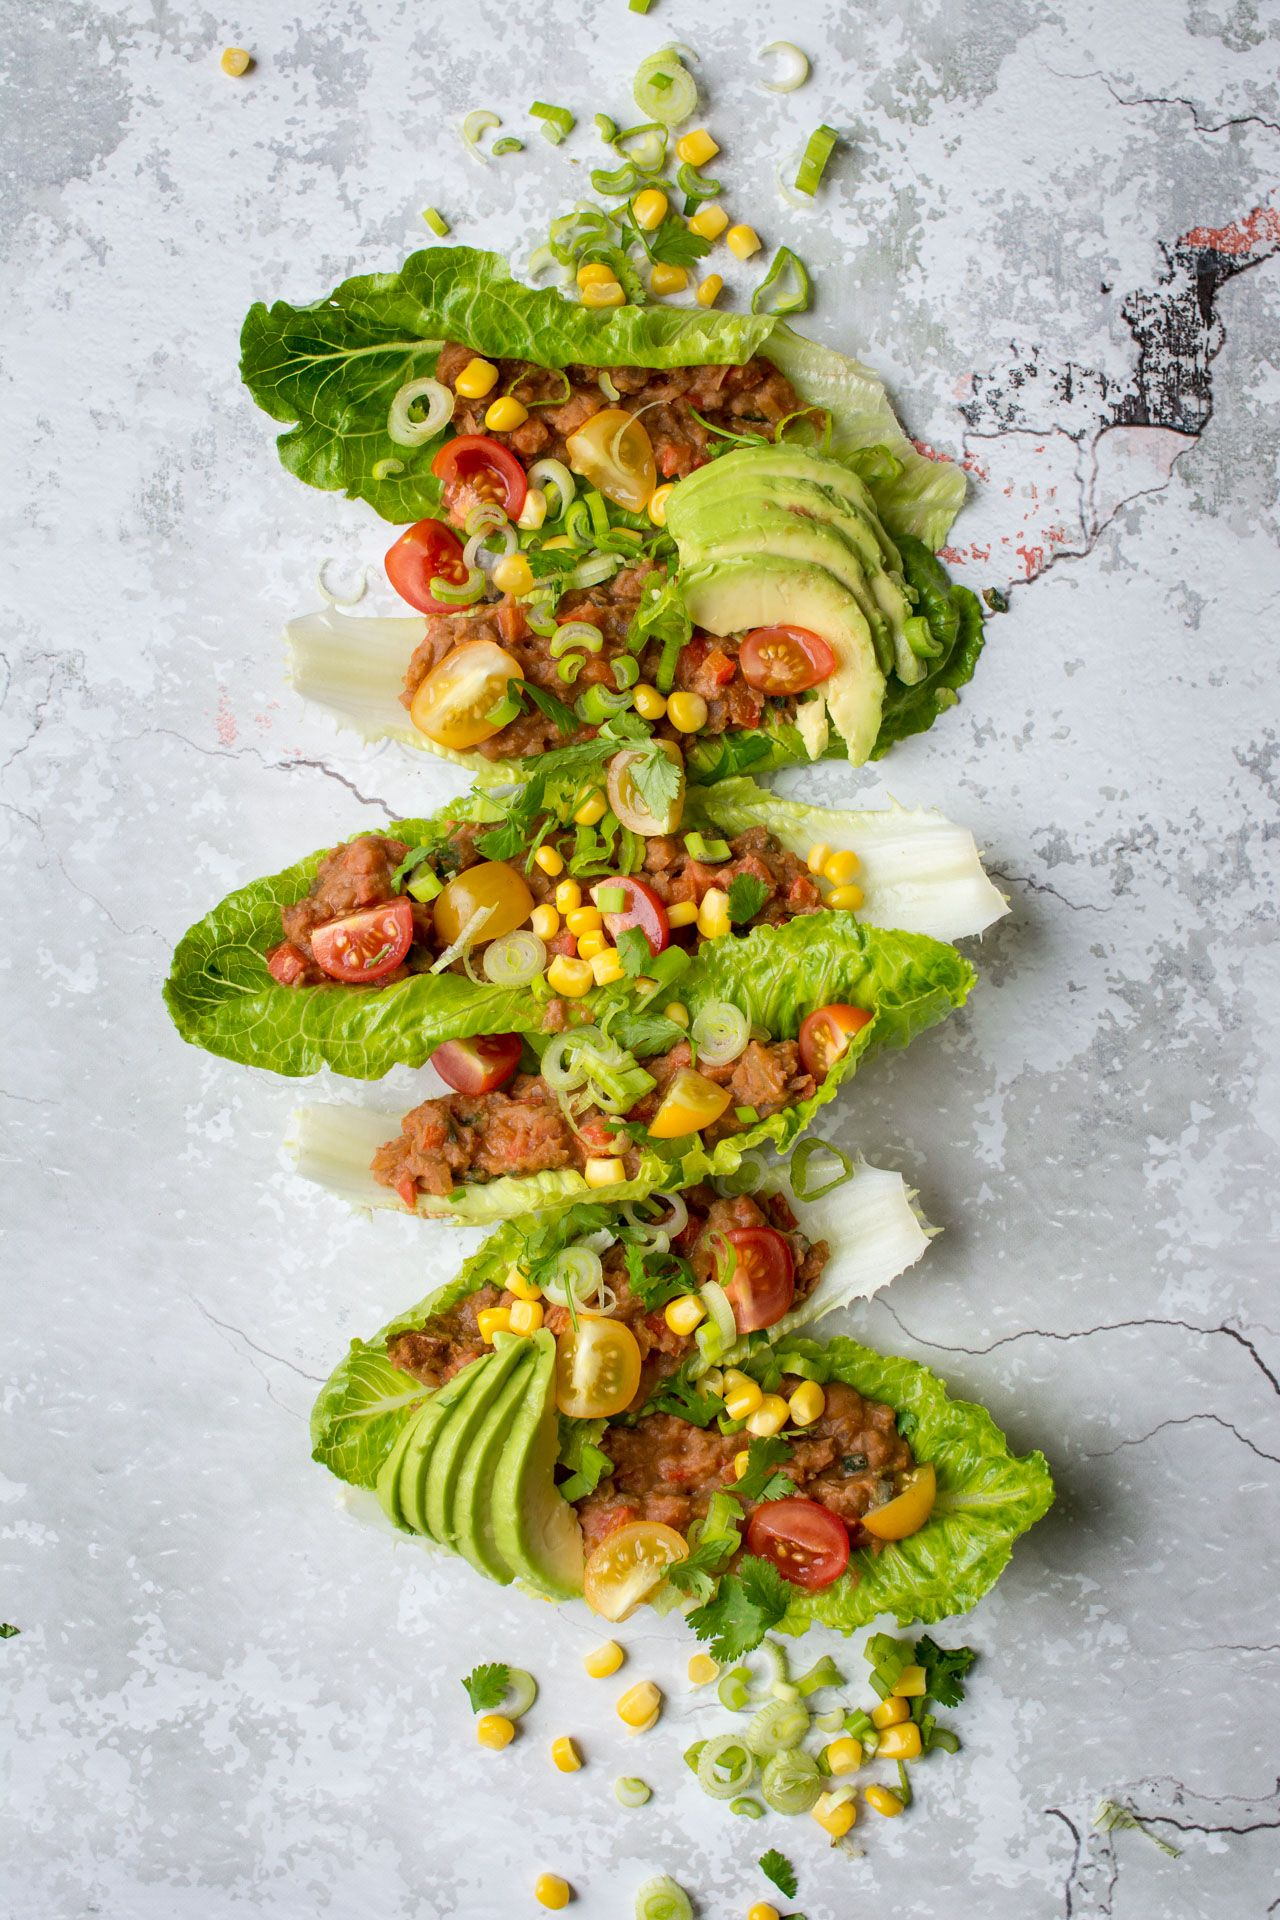 Vegan Recipes With Refried Beans